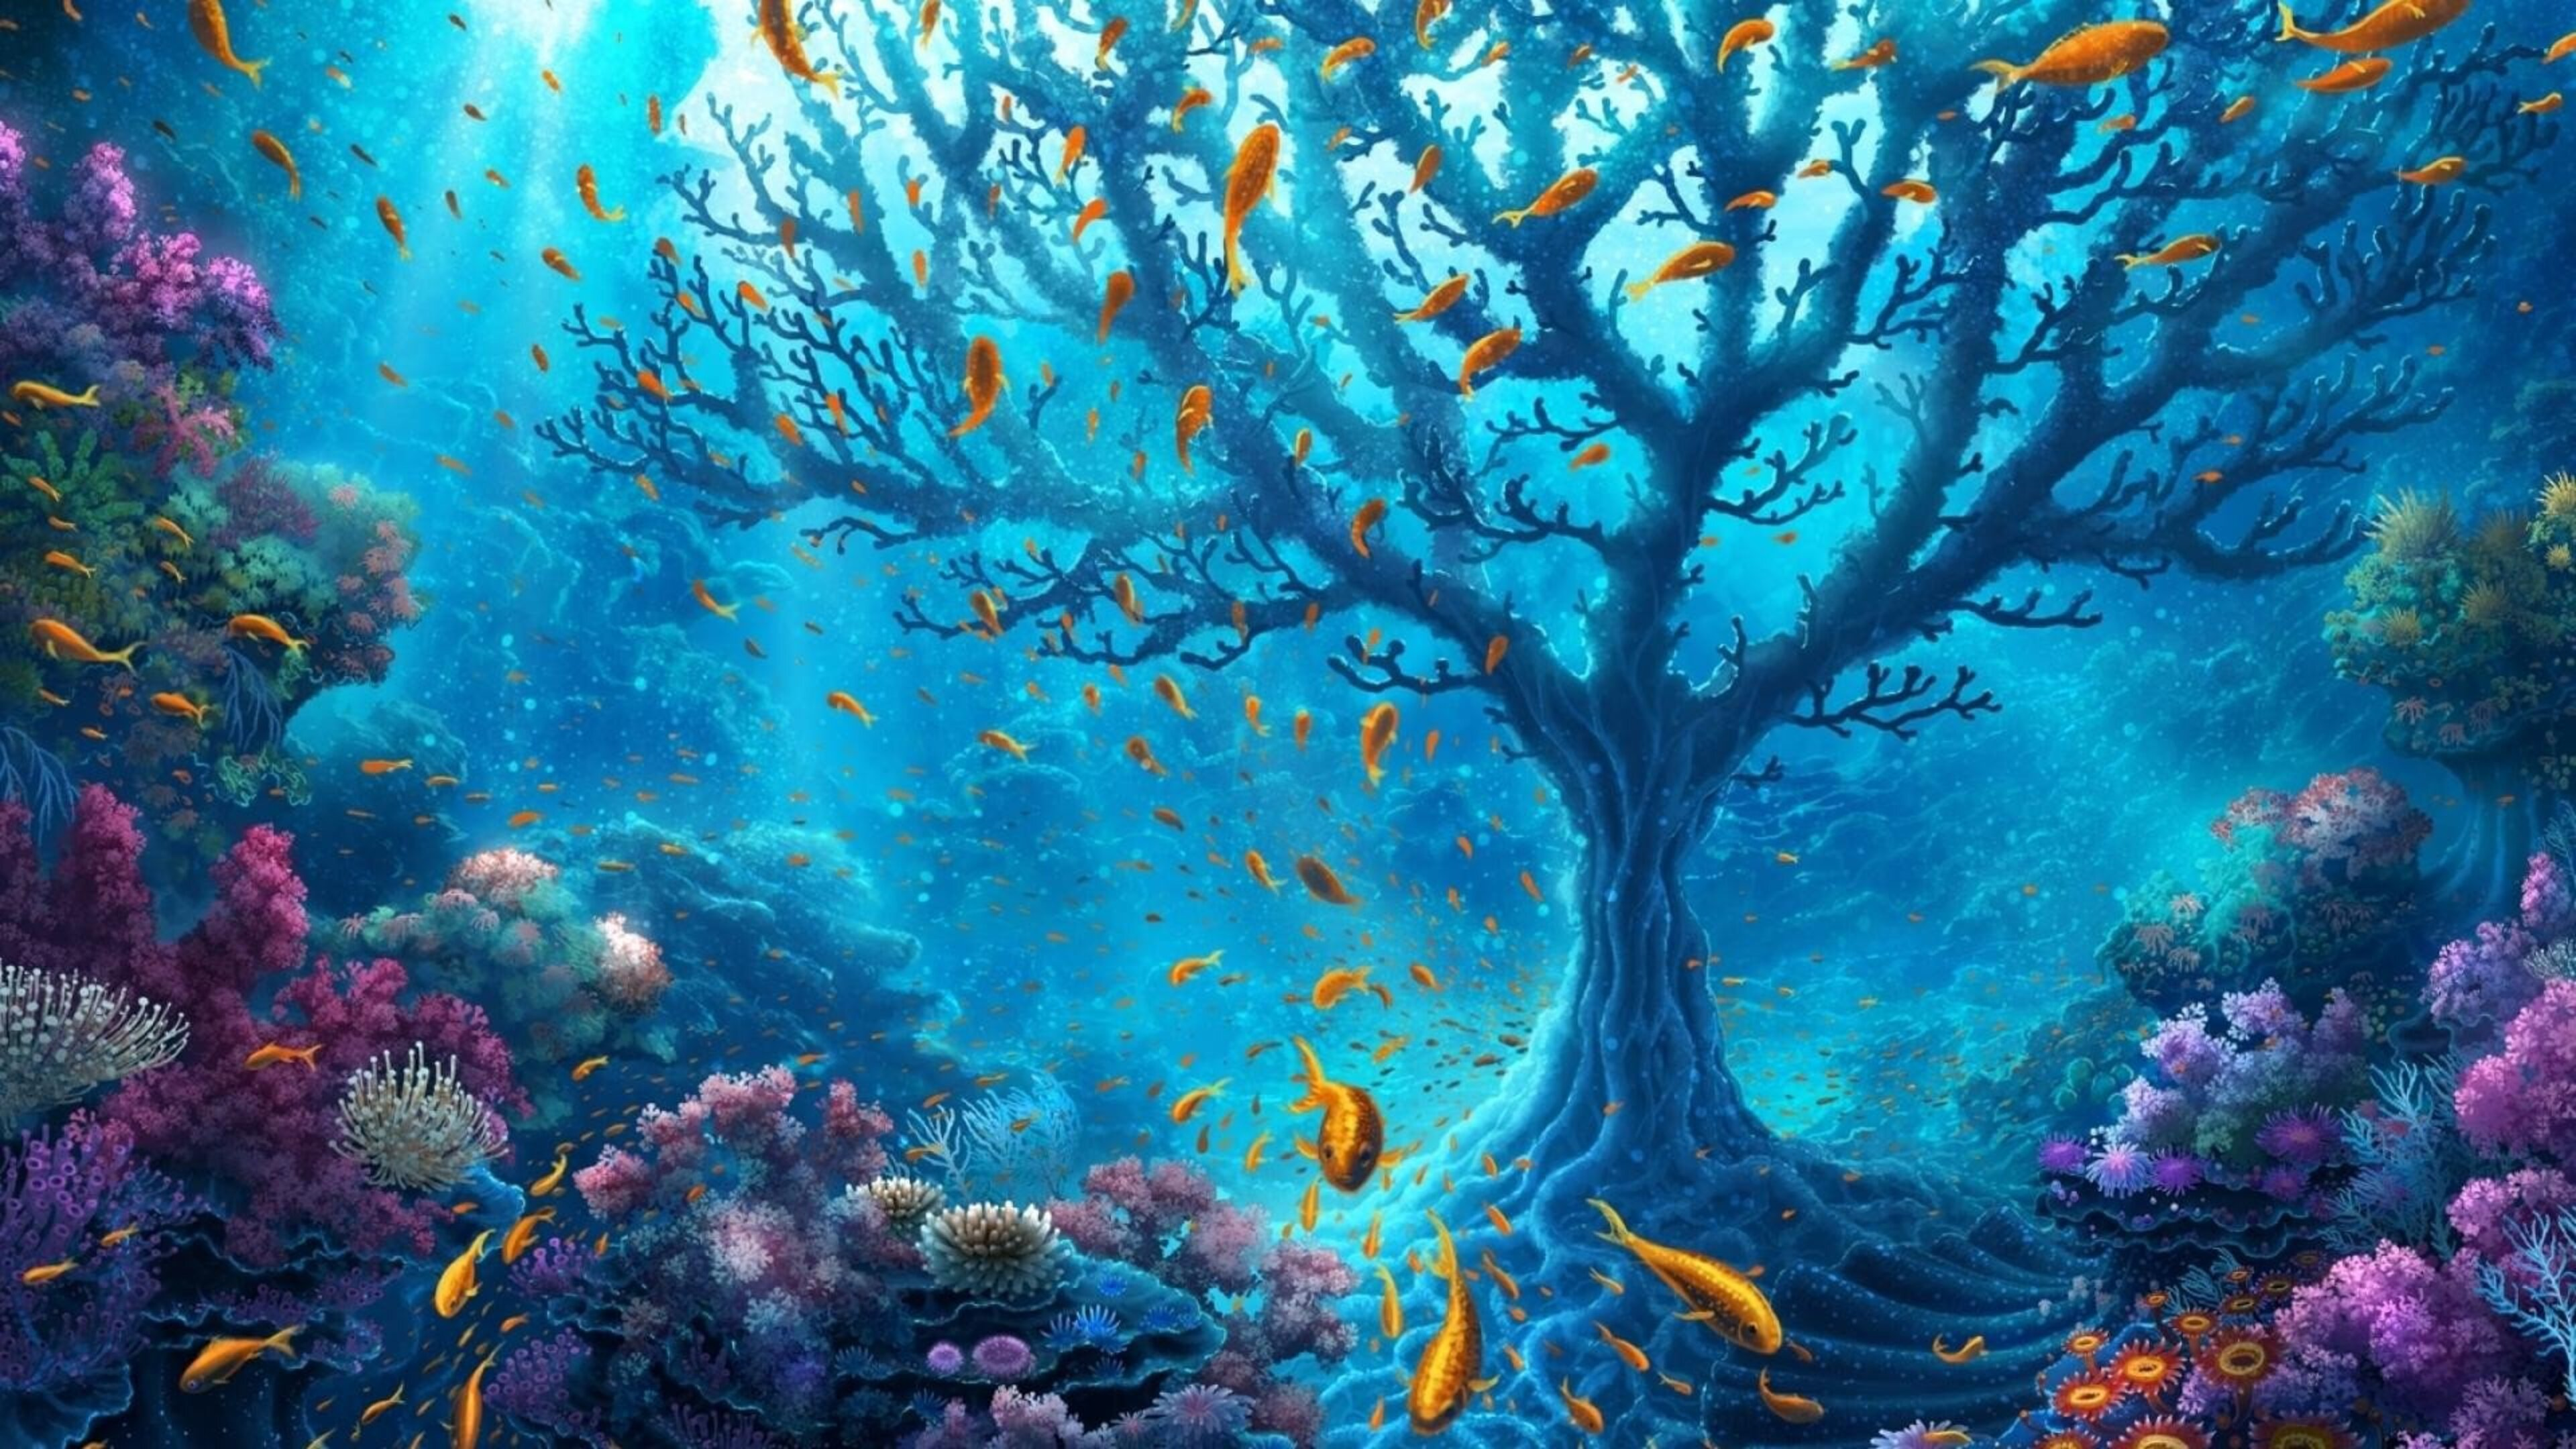 3840x2160 underwater world 4k hd 4k wallpapers images - Underwater desktop background ...